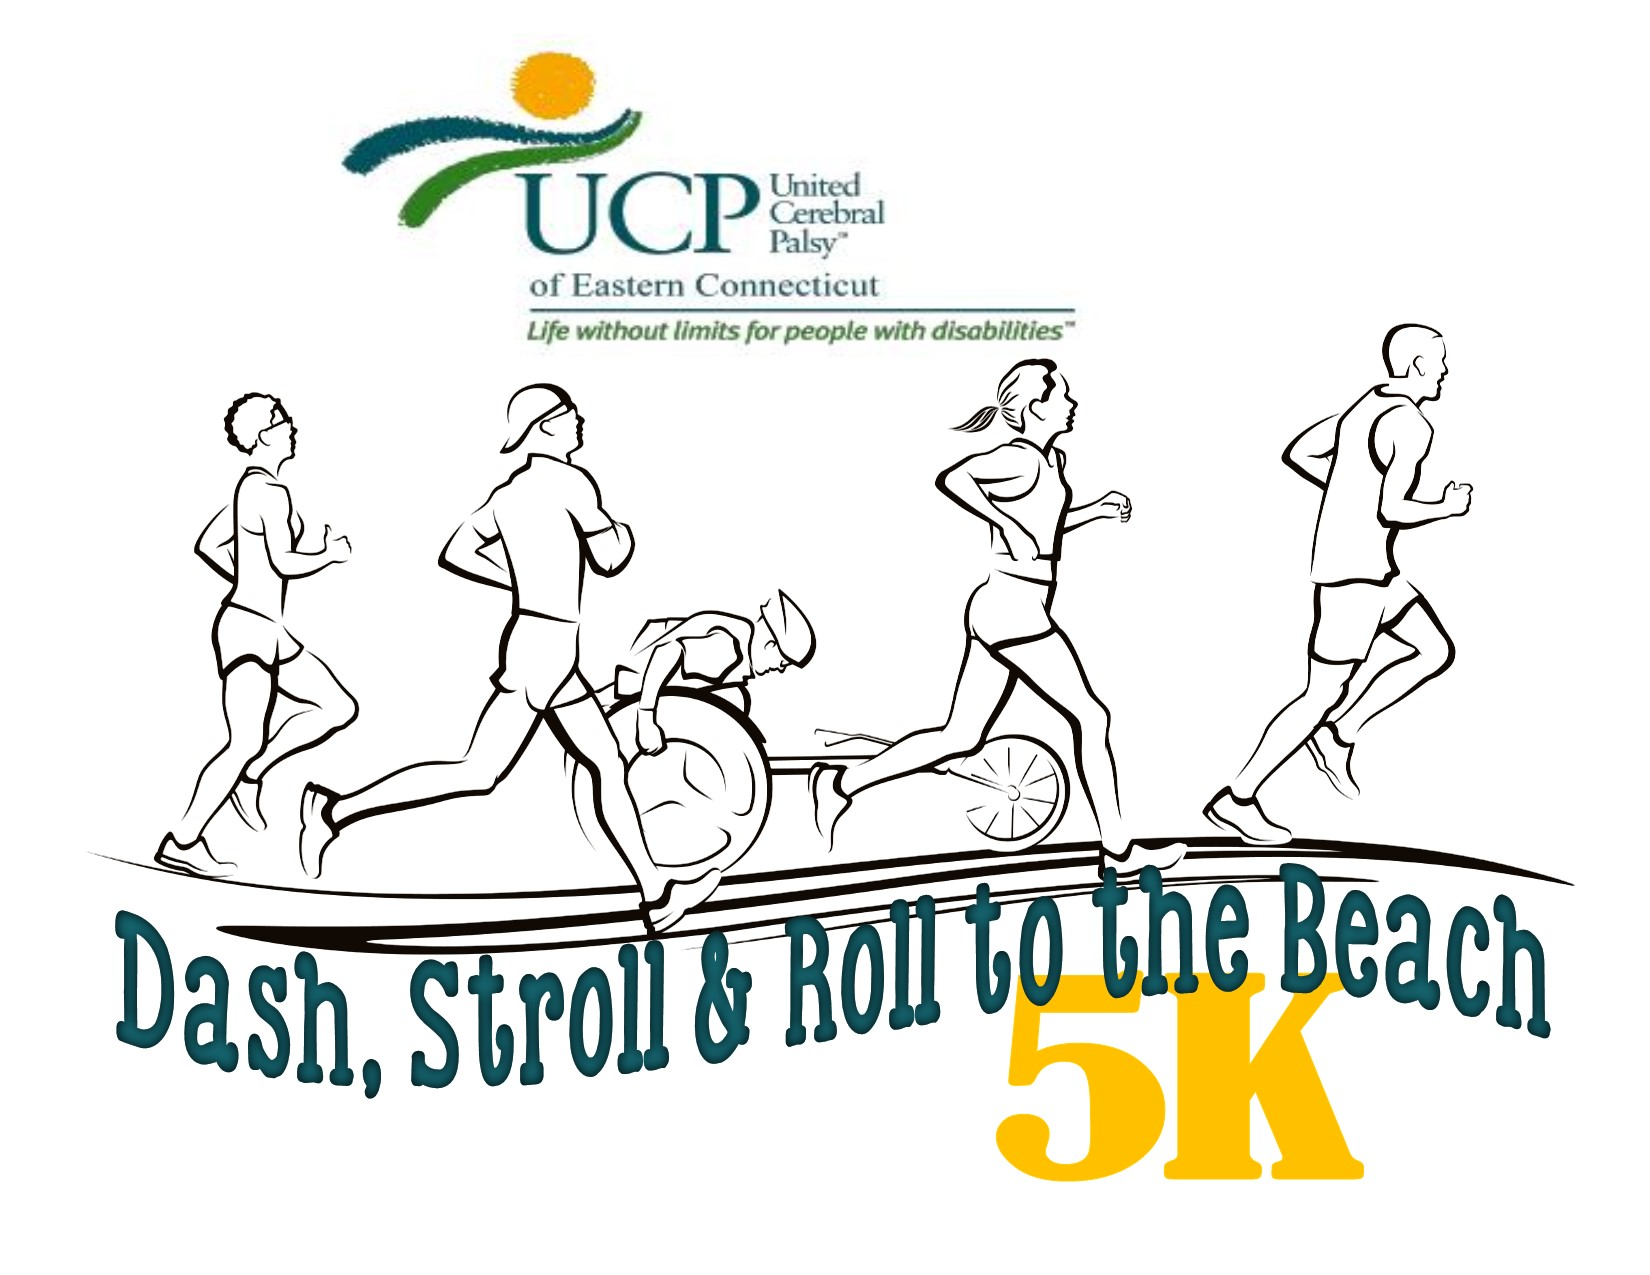 dash-stroll-and-roll-to-the-beach-sponsor